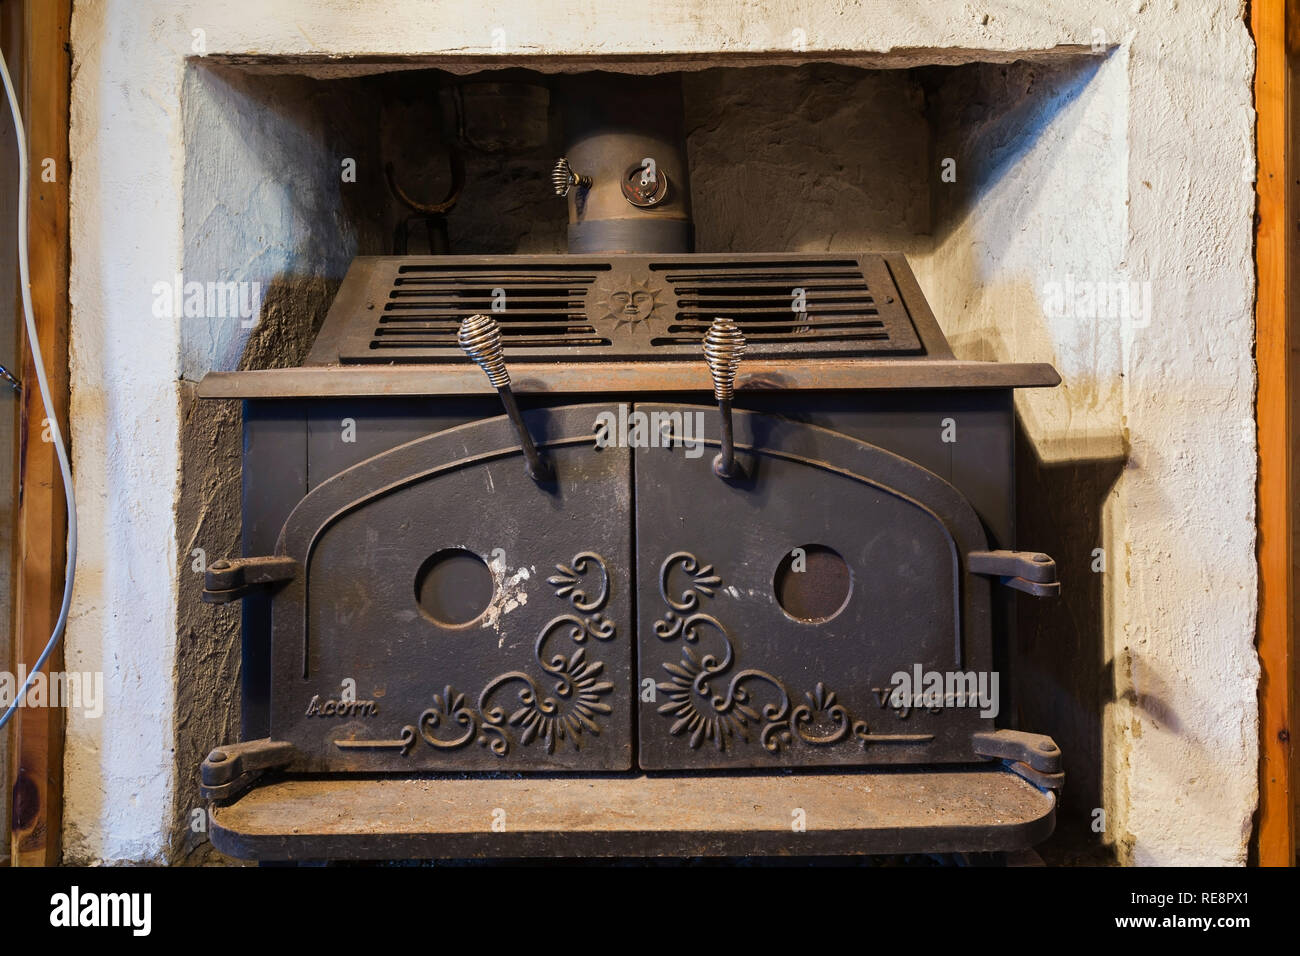 Black cast iron Acorn Voyageur wood burning stove installed in fireplace inside an old 1807 Canadiana style home - Stock Image